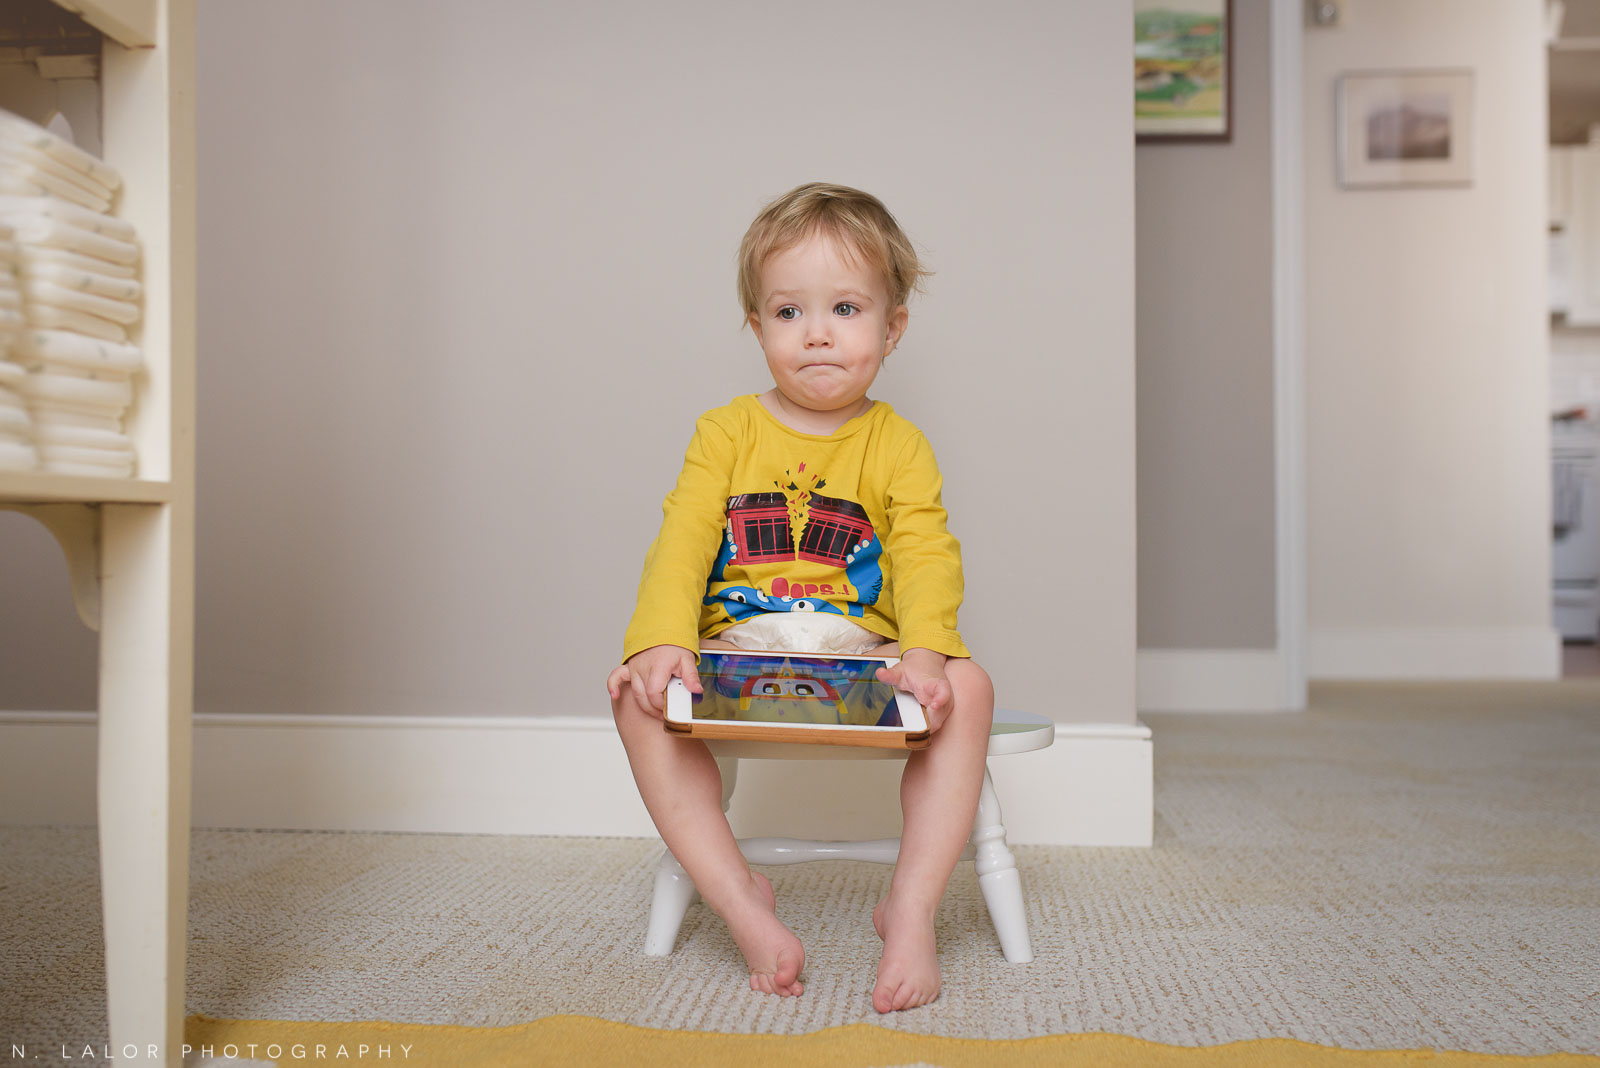 What a funny face! Two year old toddler sitting on a stool in his room, with an iPad. Photo by N. Lalor Photography.